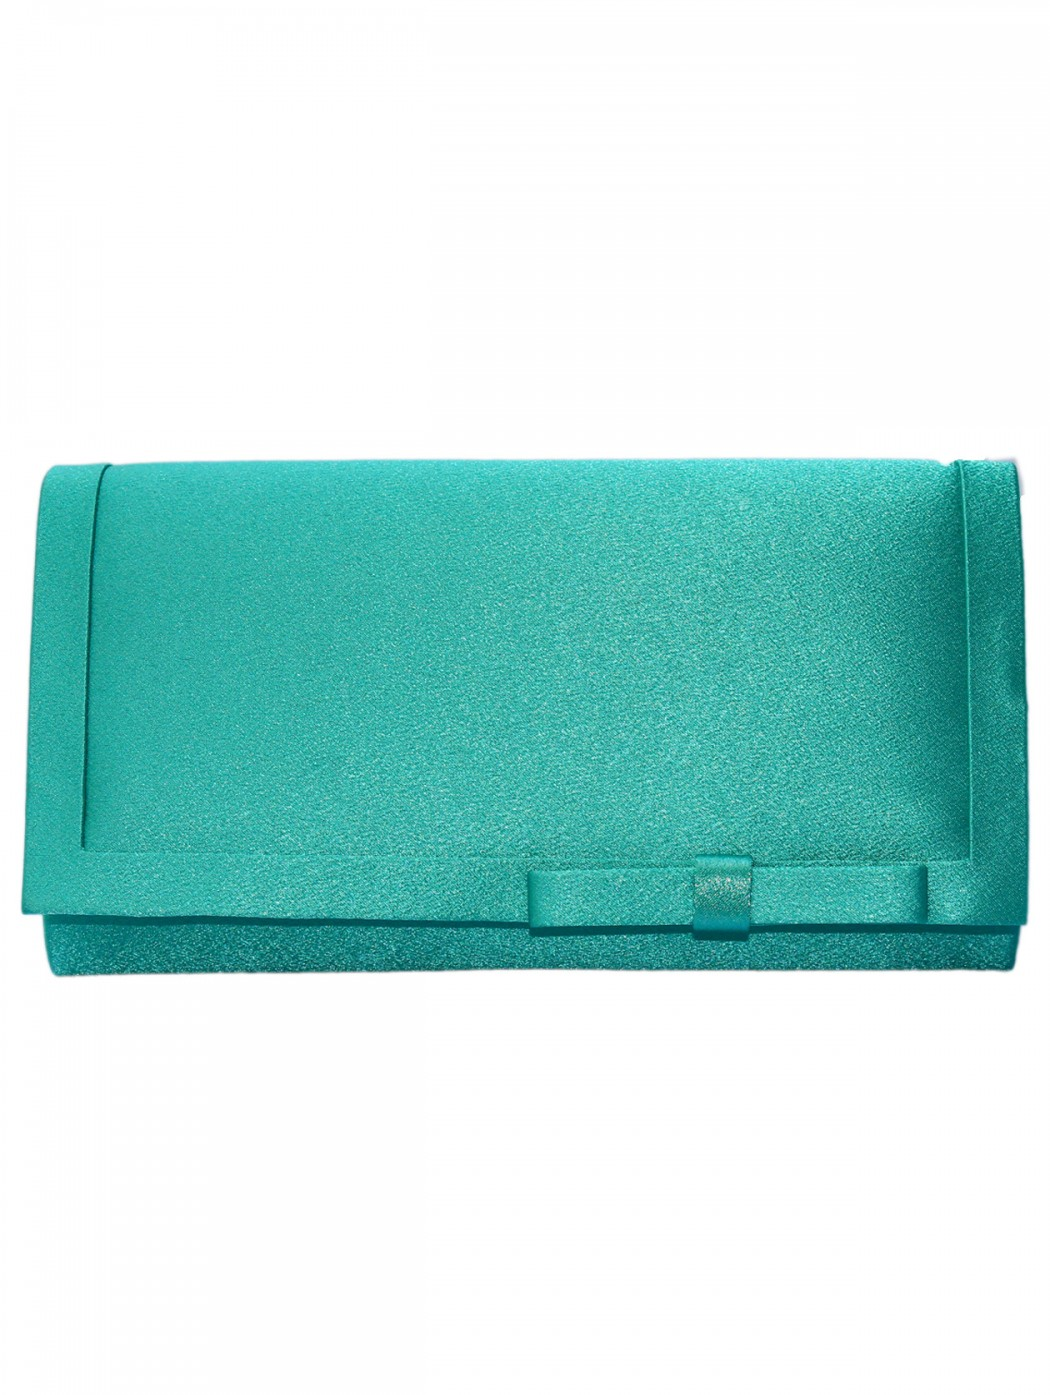 Anna Cecere yellow clutch...